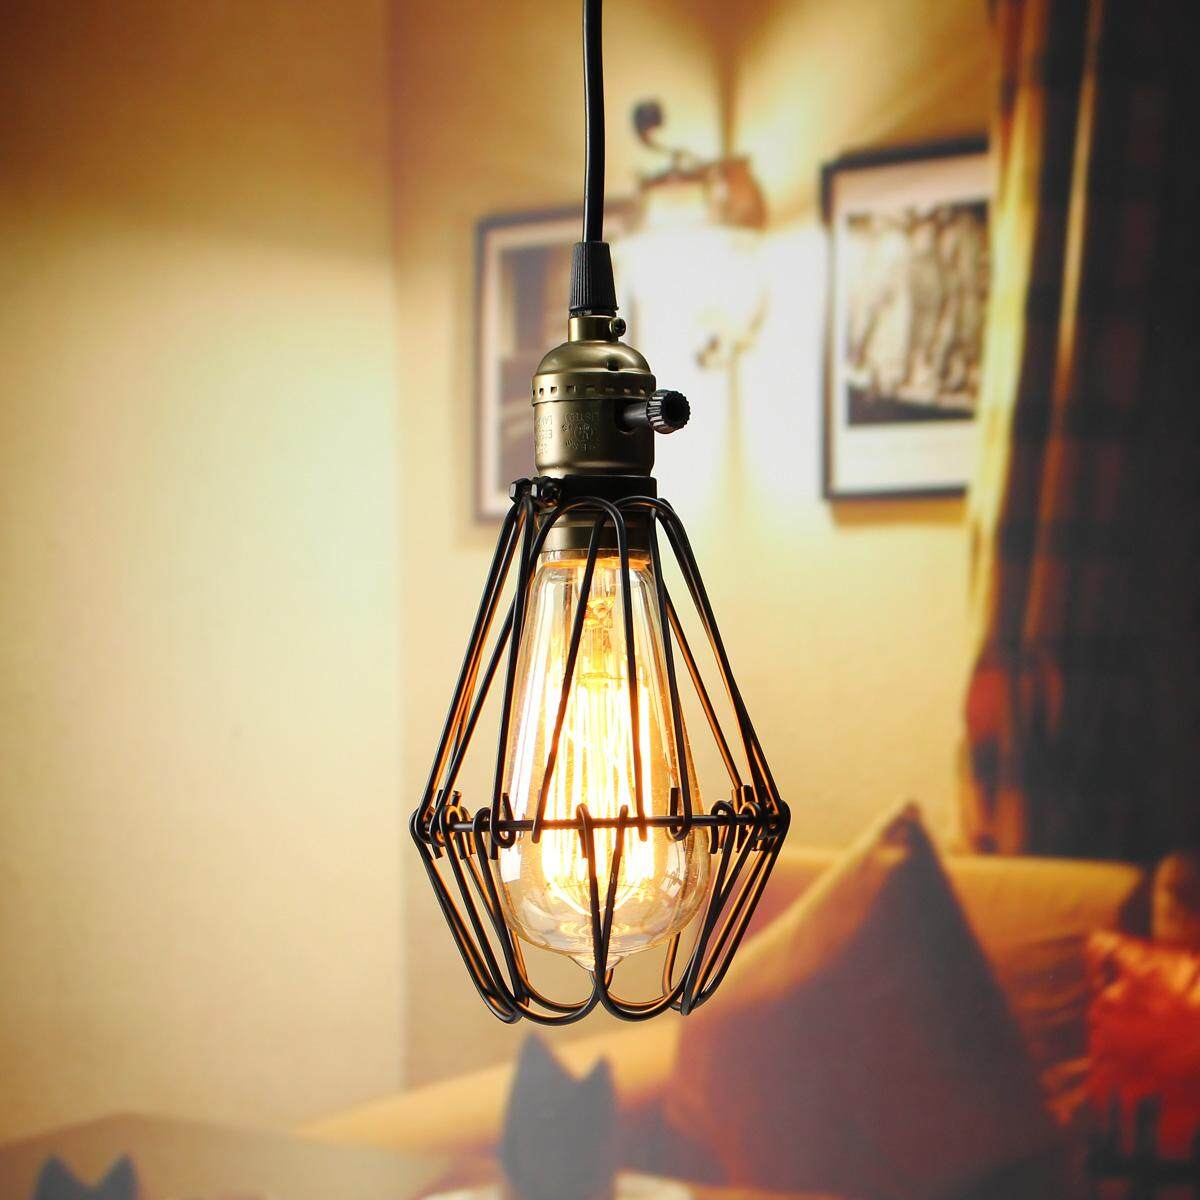 Industrial Retro Vintage Pendant Celling Light Bulb Hanging Lamp Shade Holder - Intl By Paidbang.